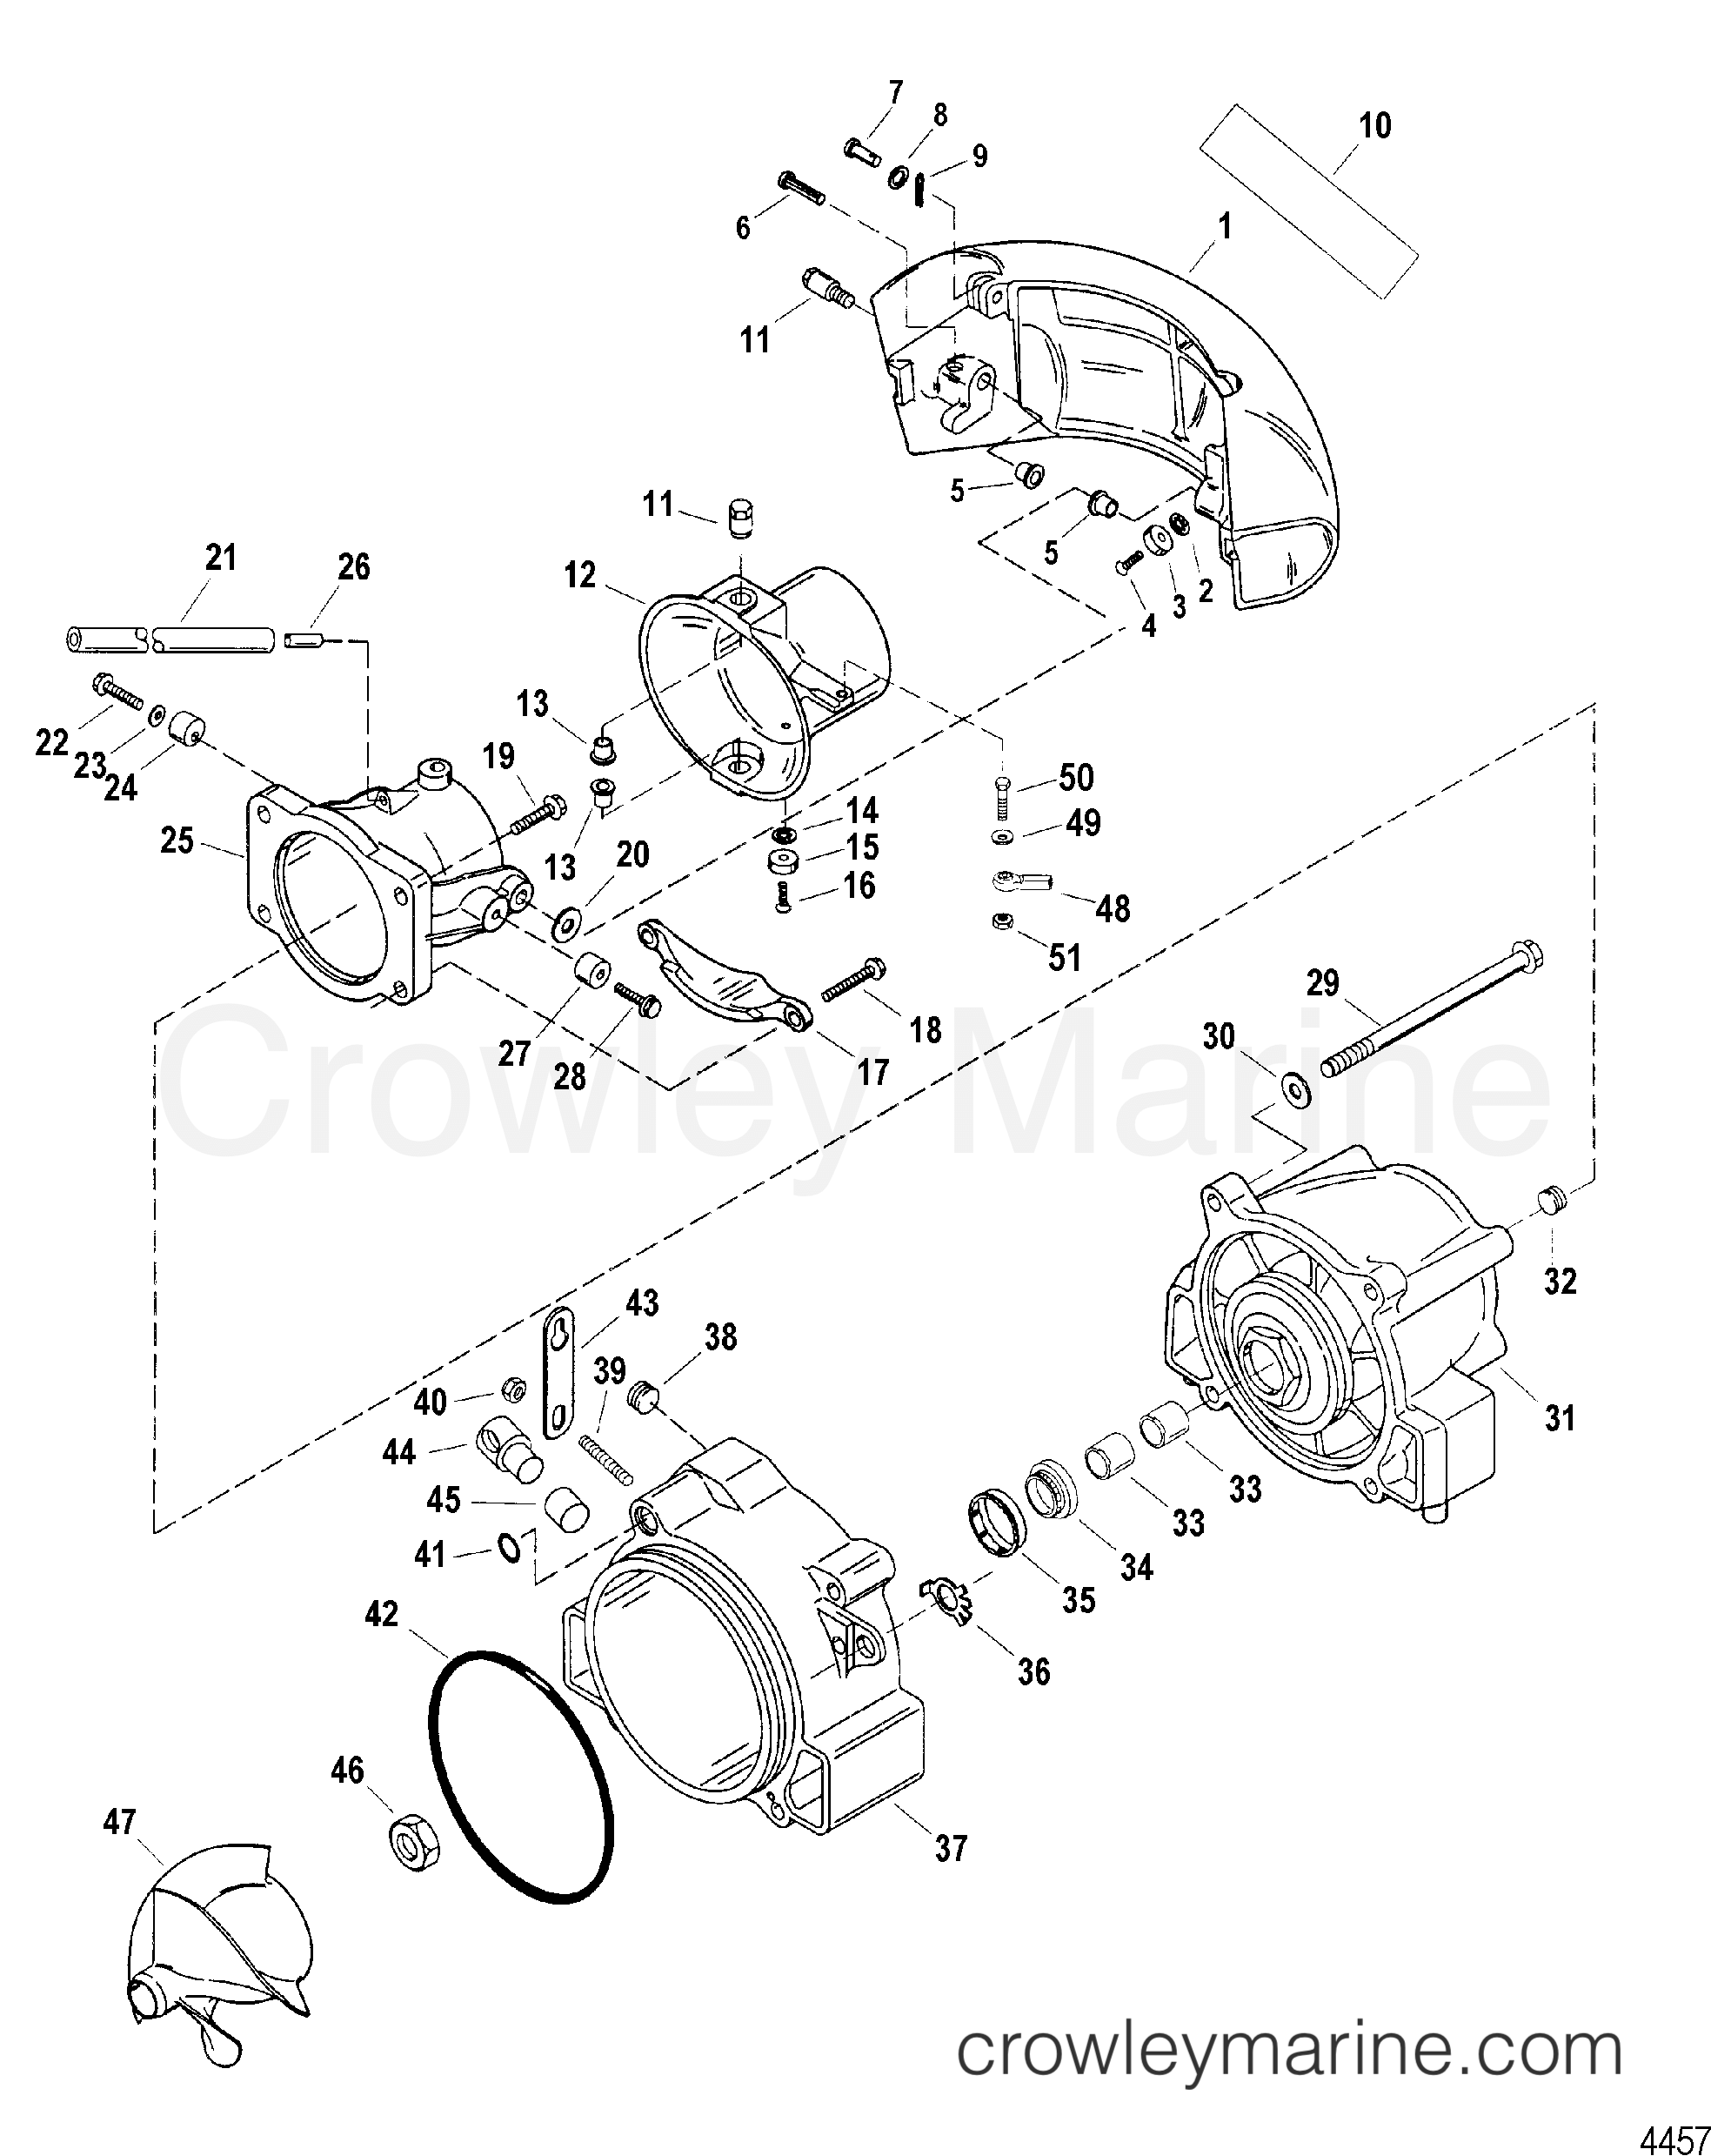 Nozzle And Rudder Components